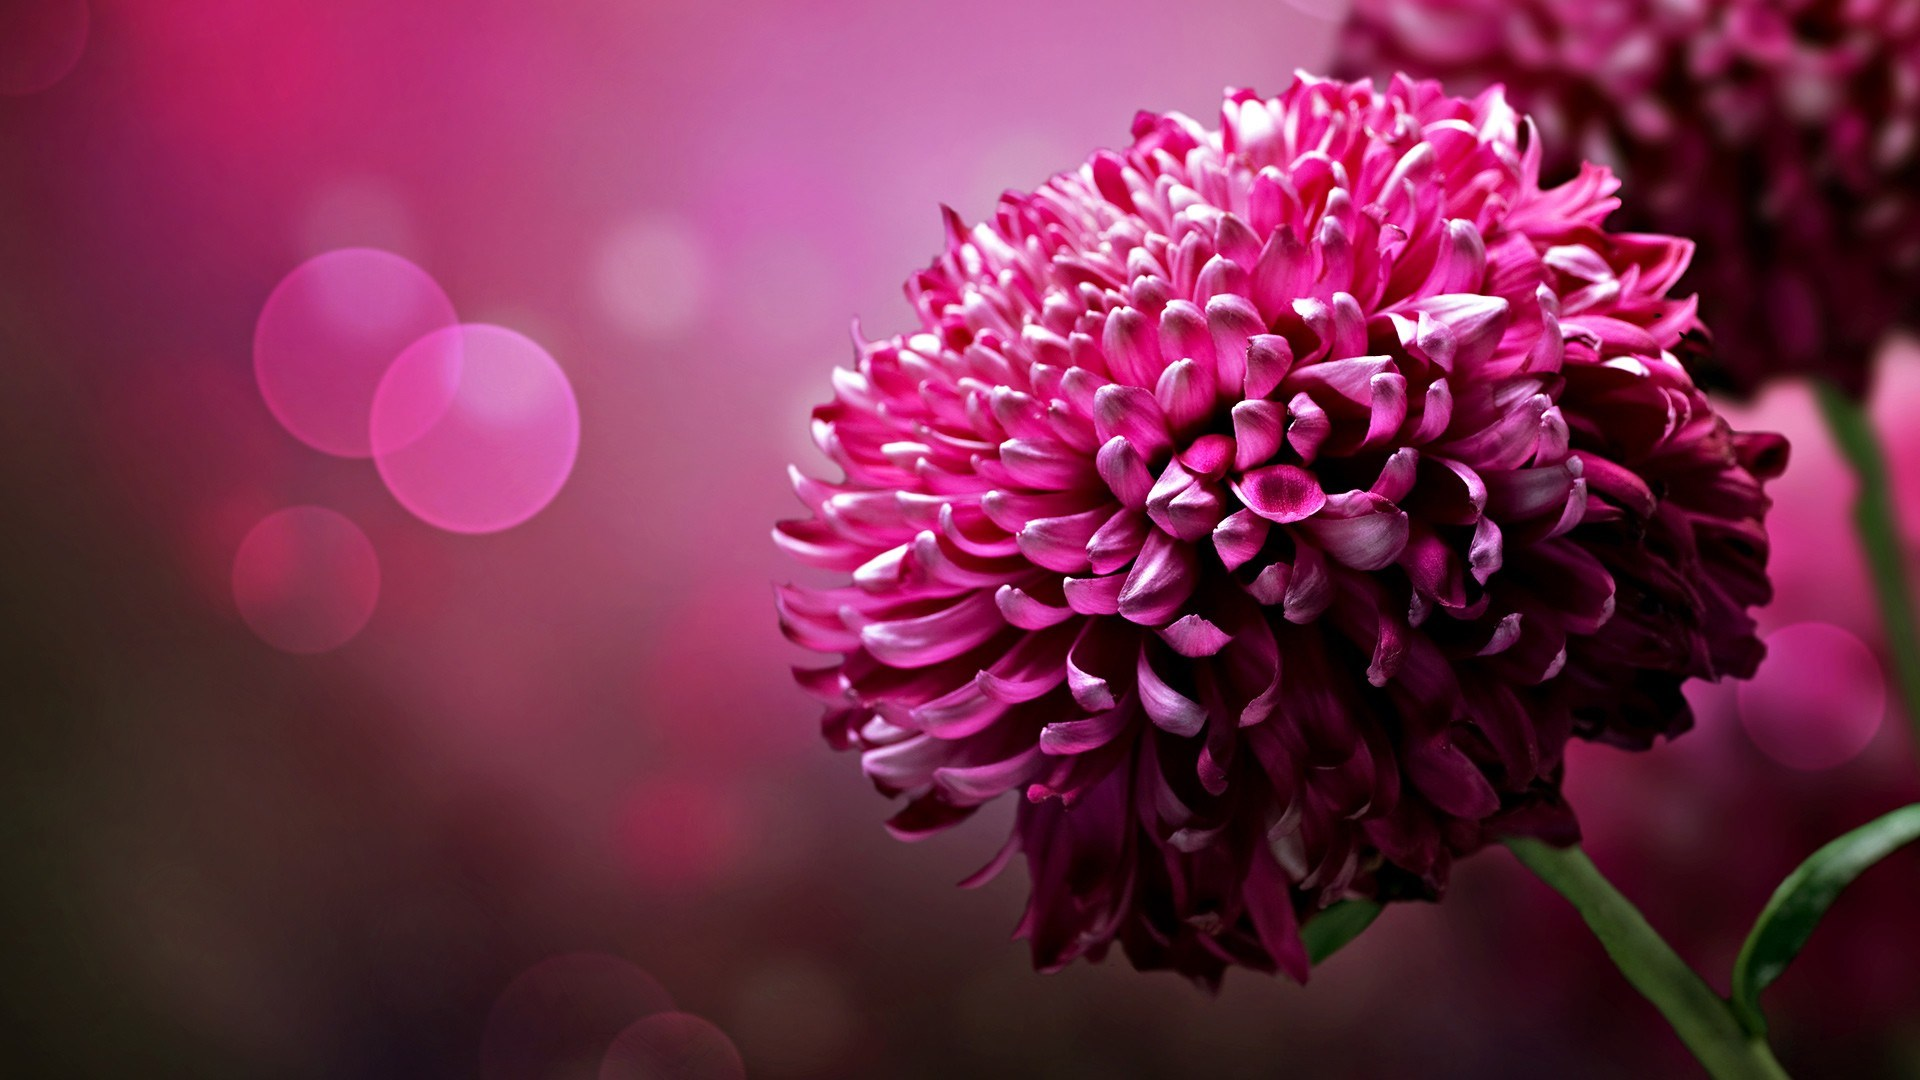 desktop-full-screen-floral-hd-1920x1080-wallpaper-wp3804485